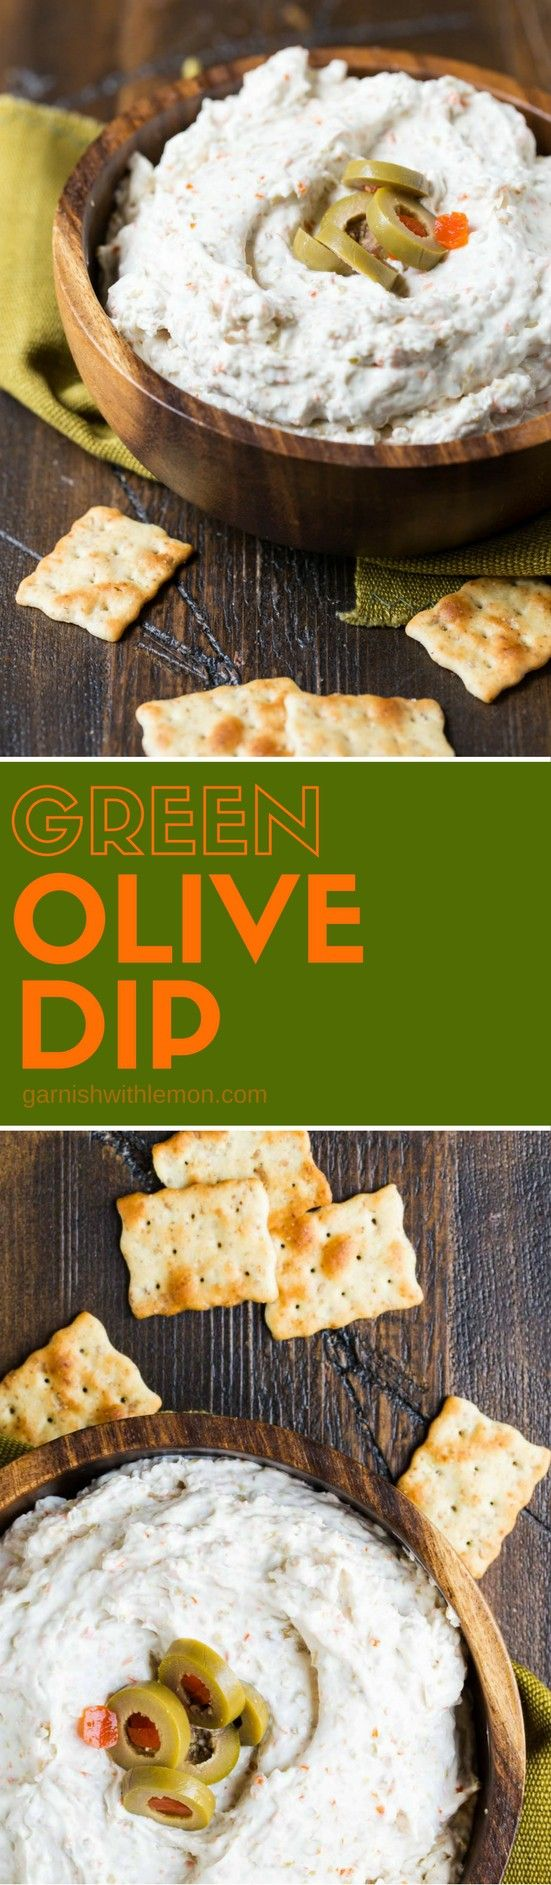 360 Best Dips Images On Pinterest Recipes Cooking Food And Drink Persimmon Pie Lemonhead Lip Smack Box This Tangy Green Olive Dip Will Be The Hit Of Your Next Party It Comes